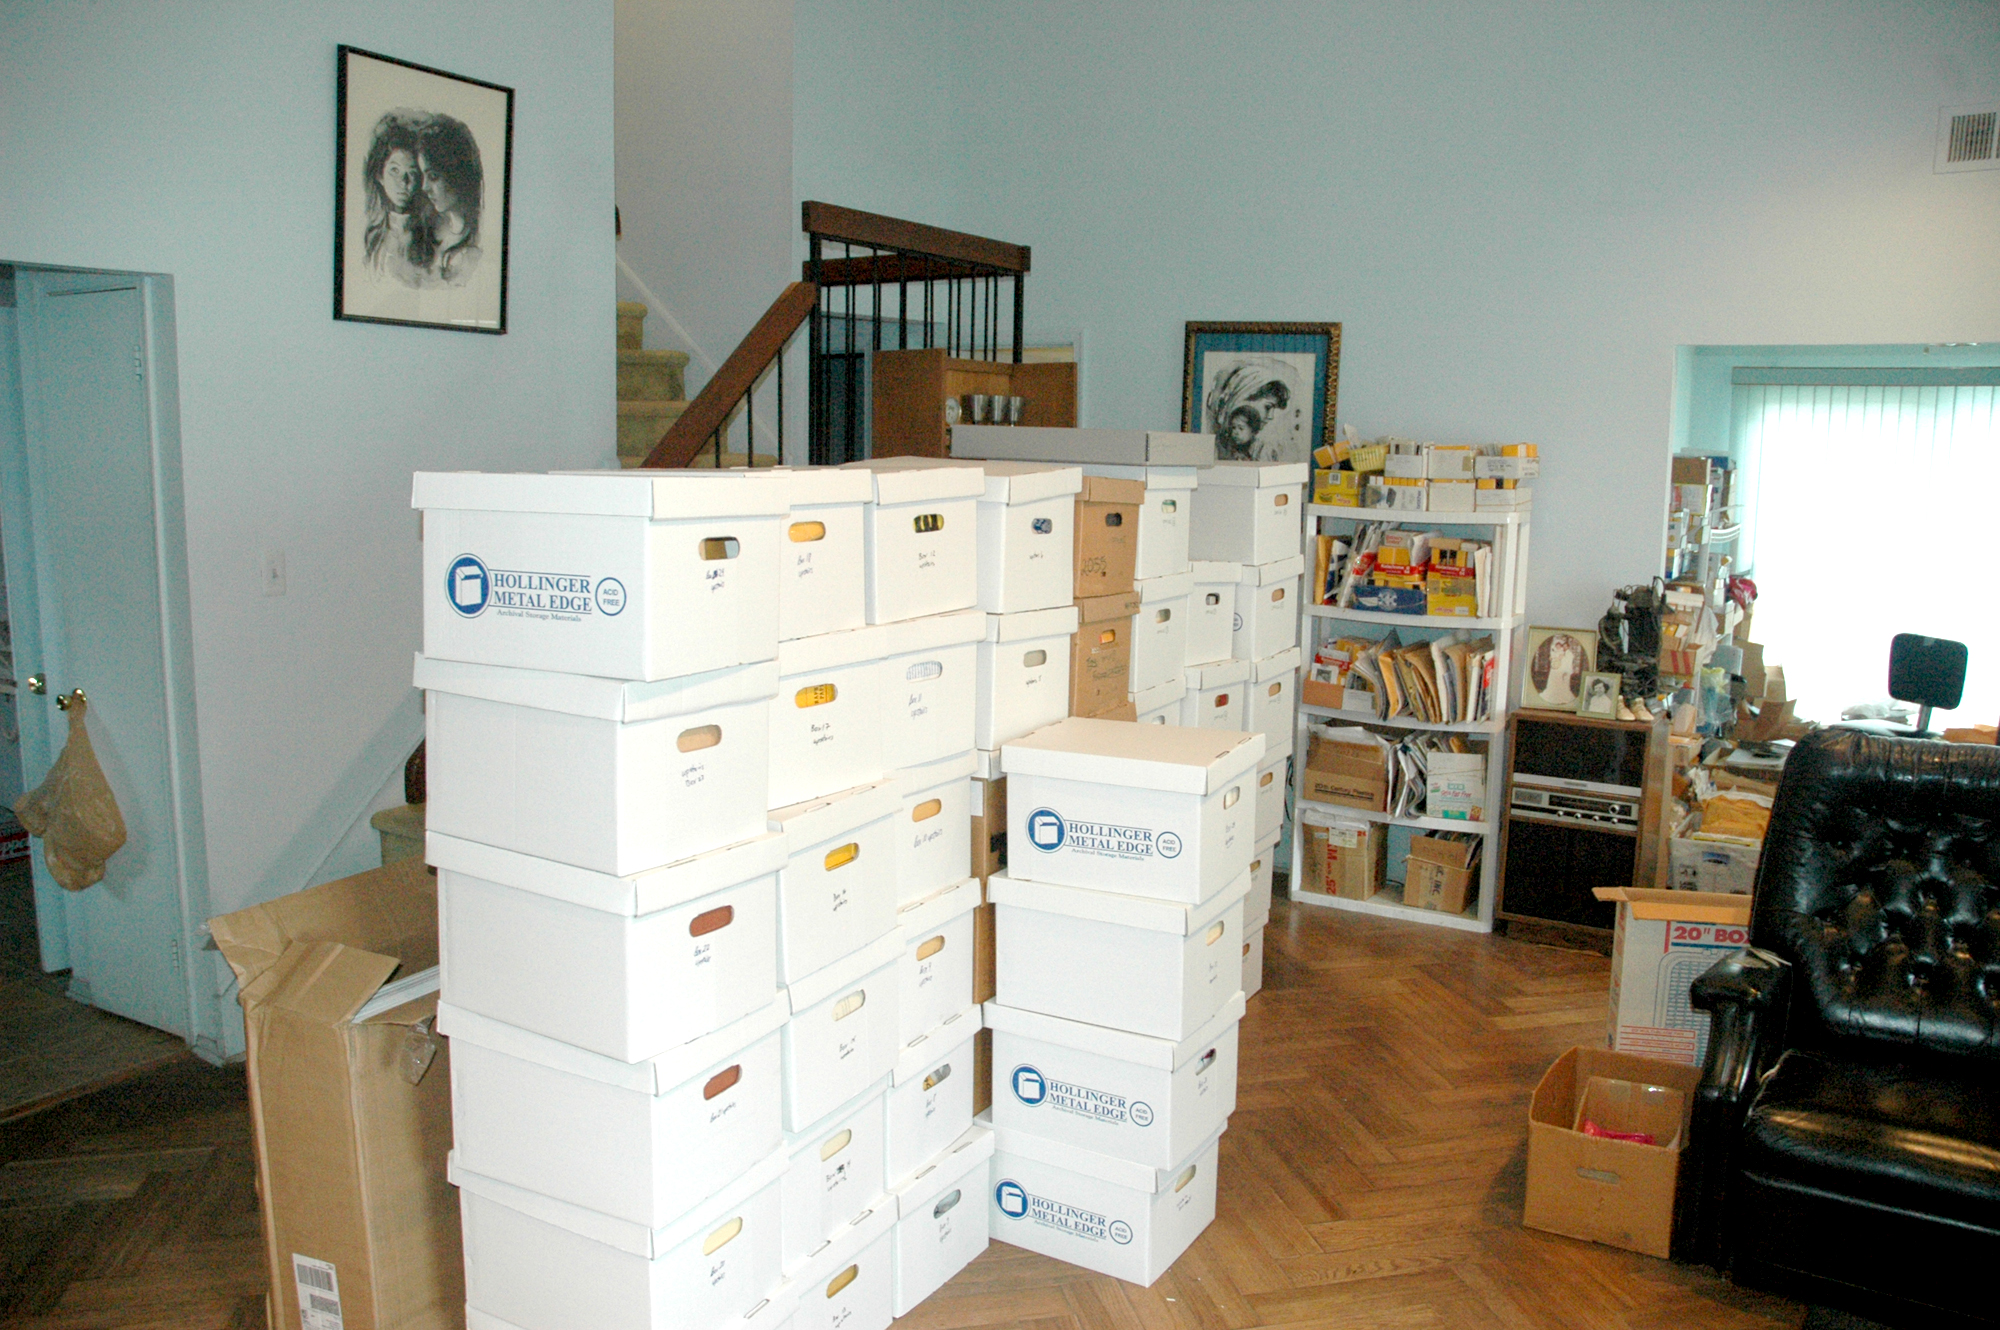 Packing the collection into boxes